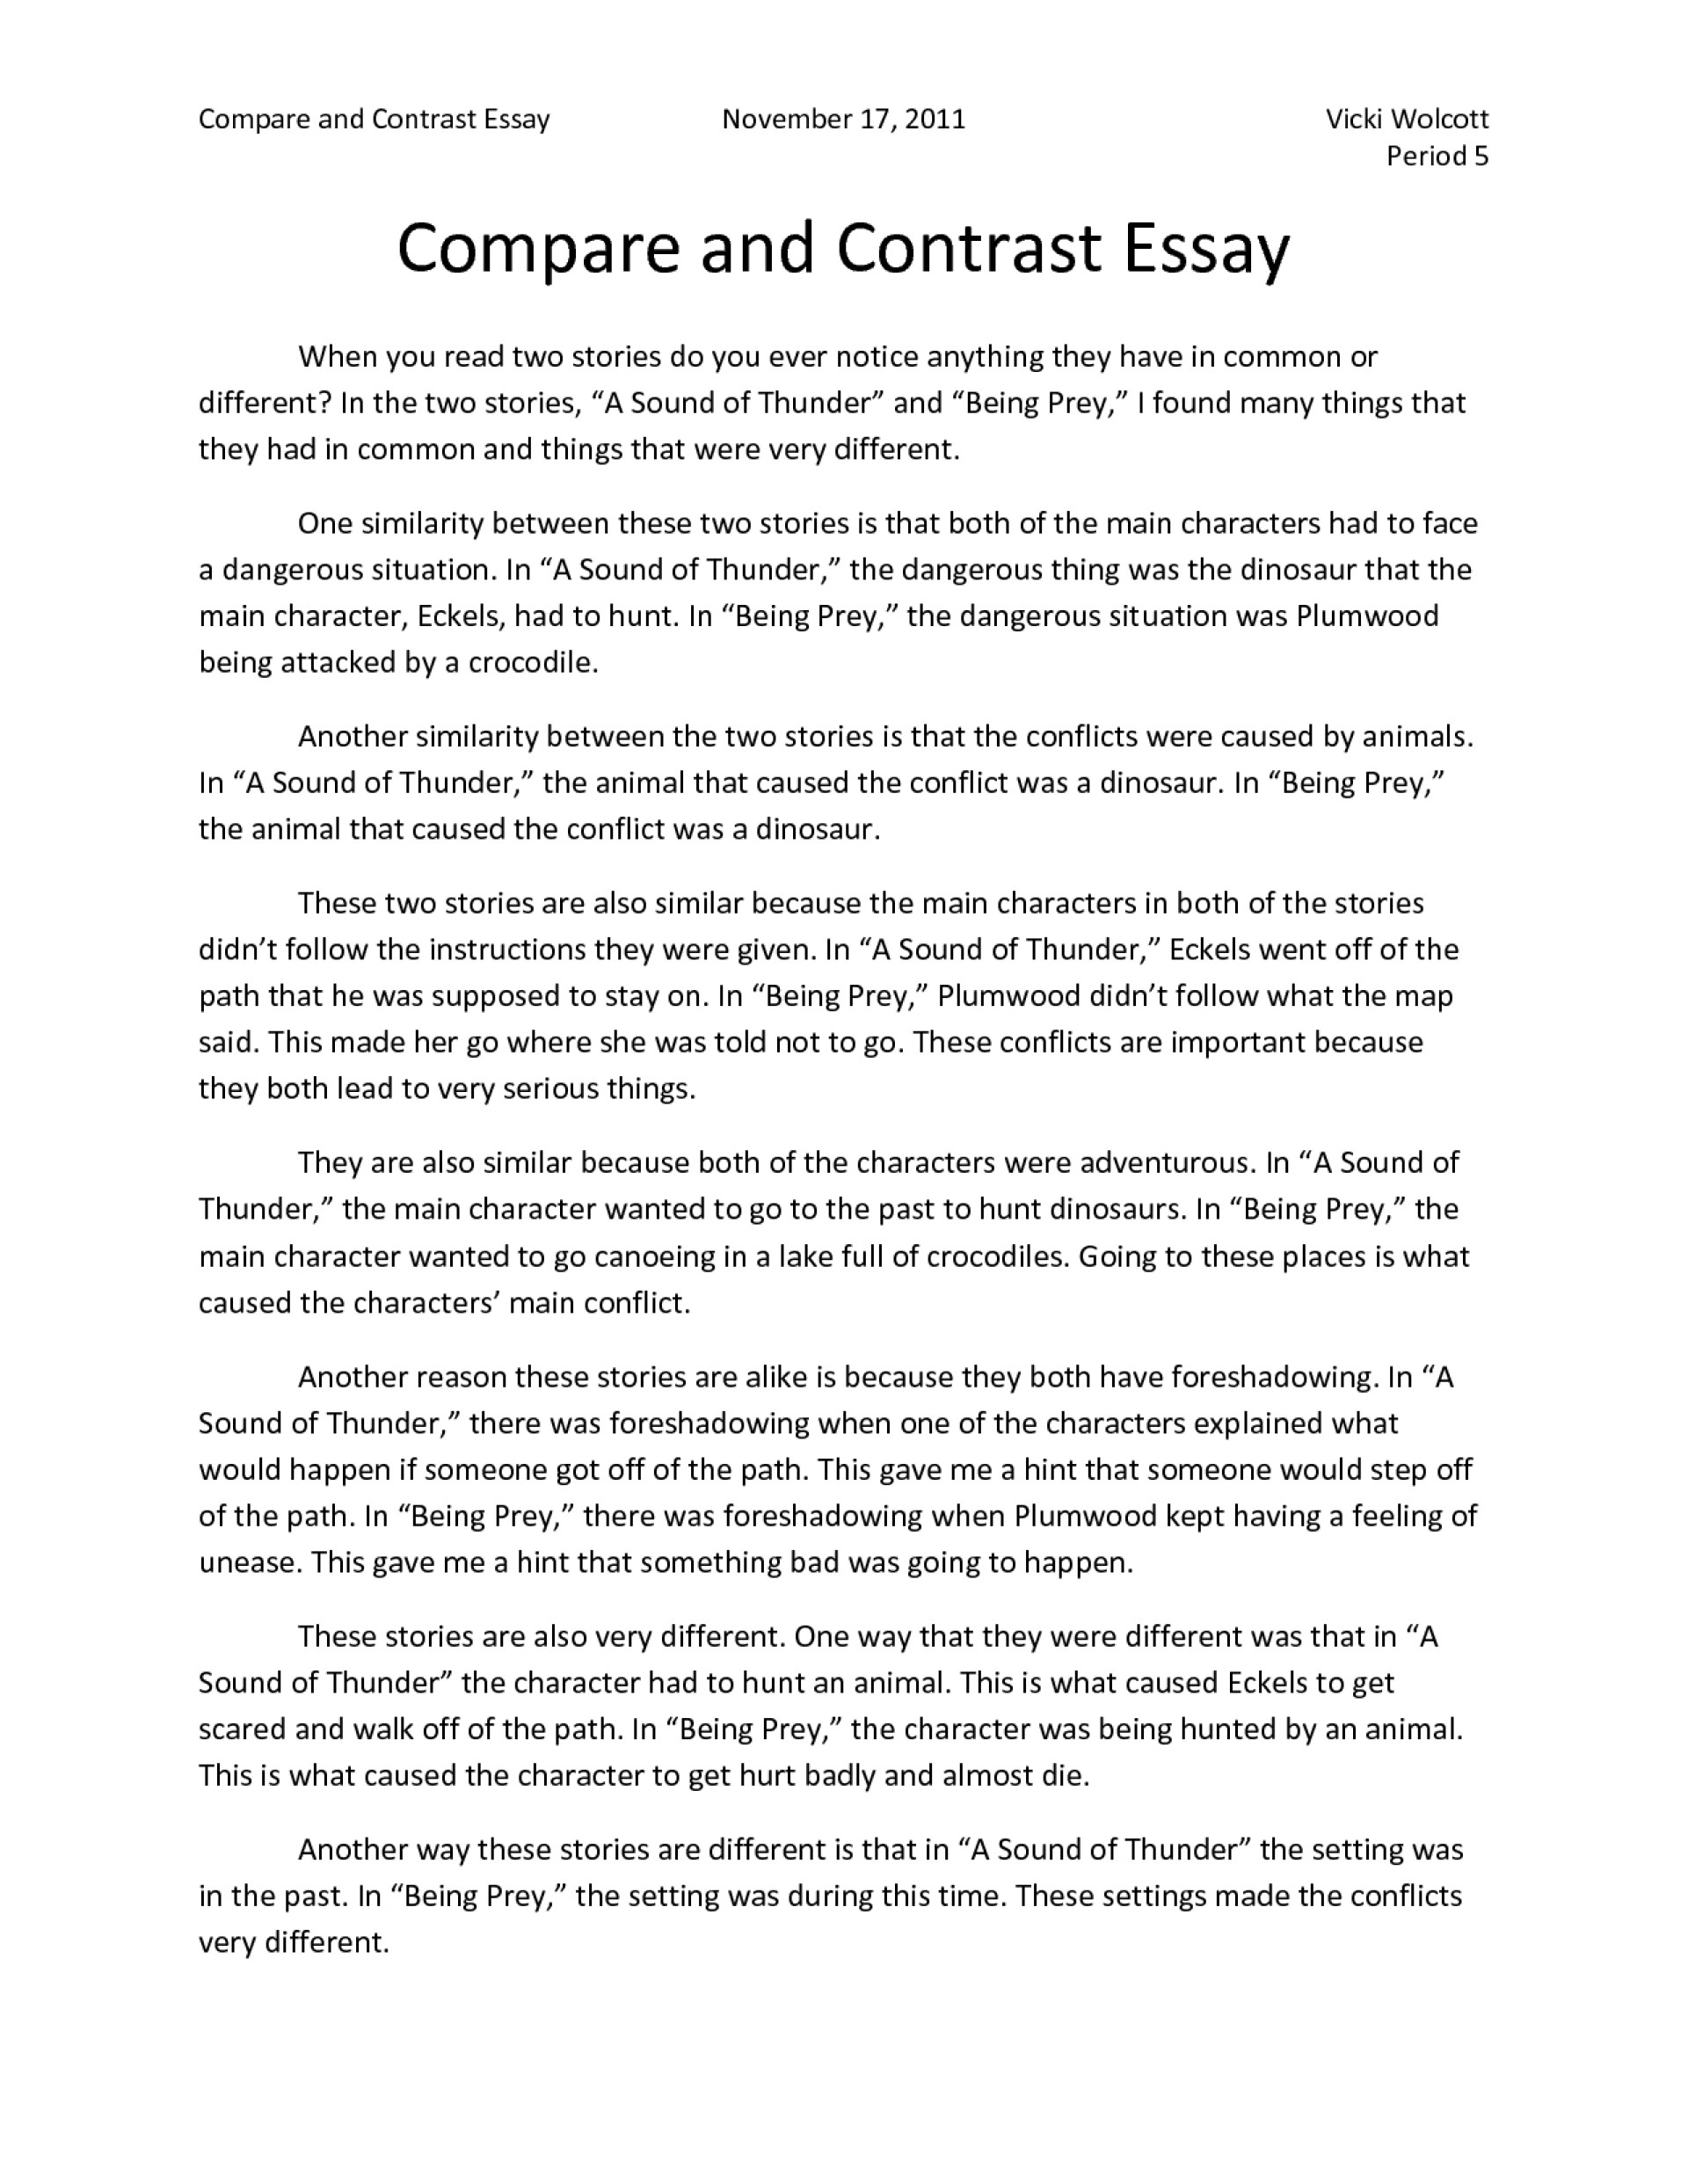 004 Comparative Essay Example Compare And Contrast Basic Frightening Pdf Thesis Literary Examples 1920